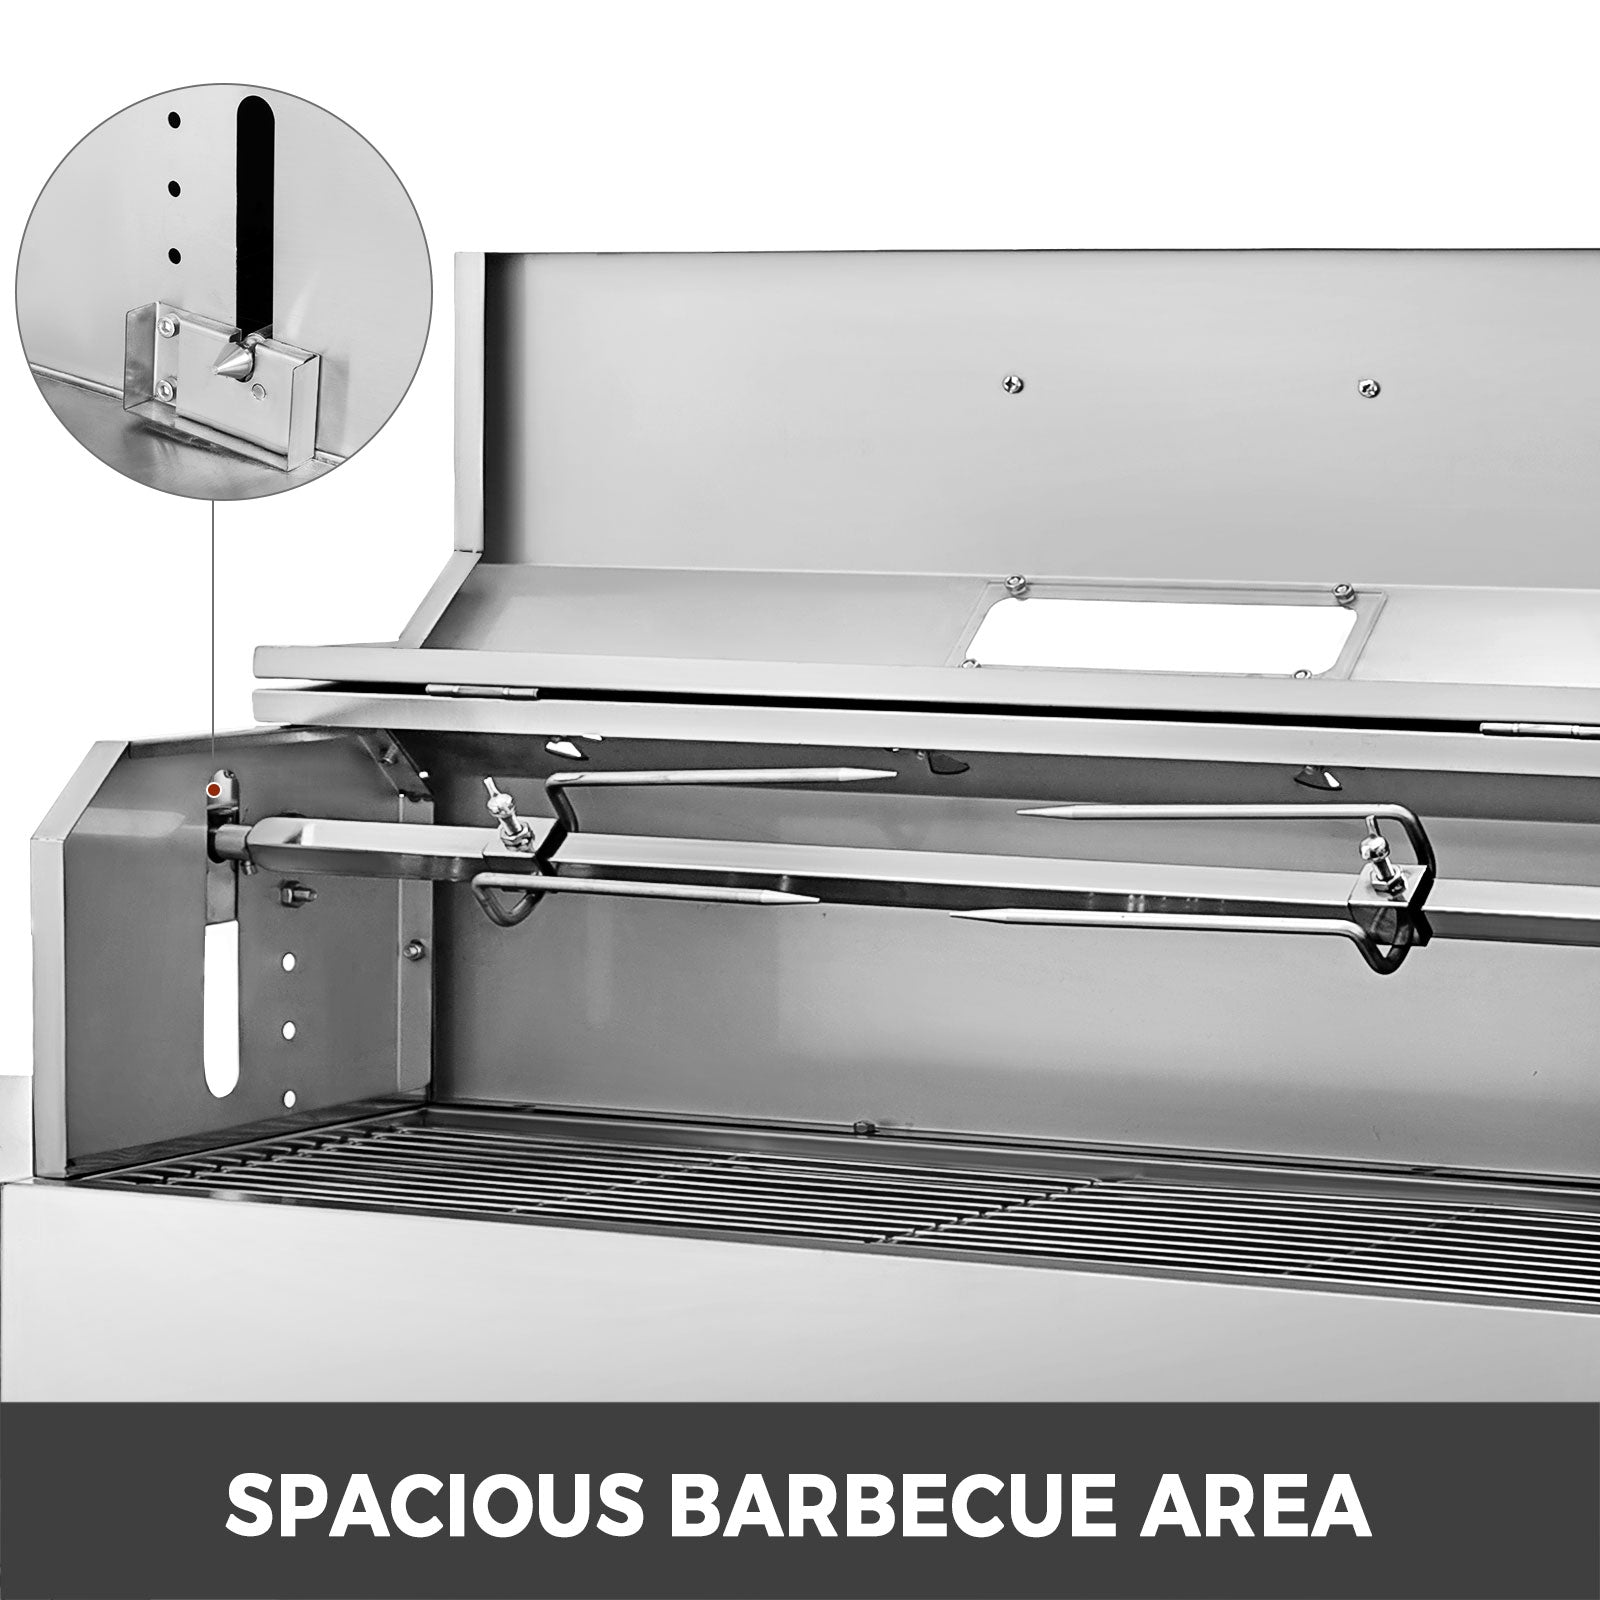 Bbq Charcoal Grill 5-stage Charcoal Position 2 Side Boards Heat Insulation Lid